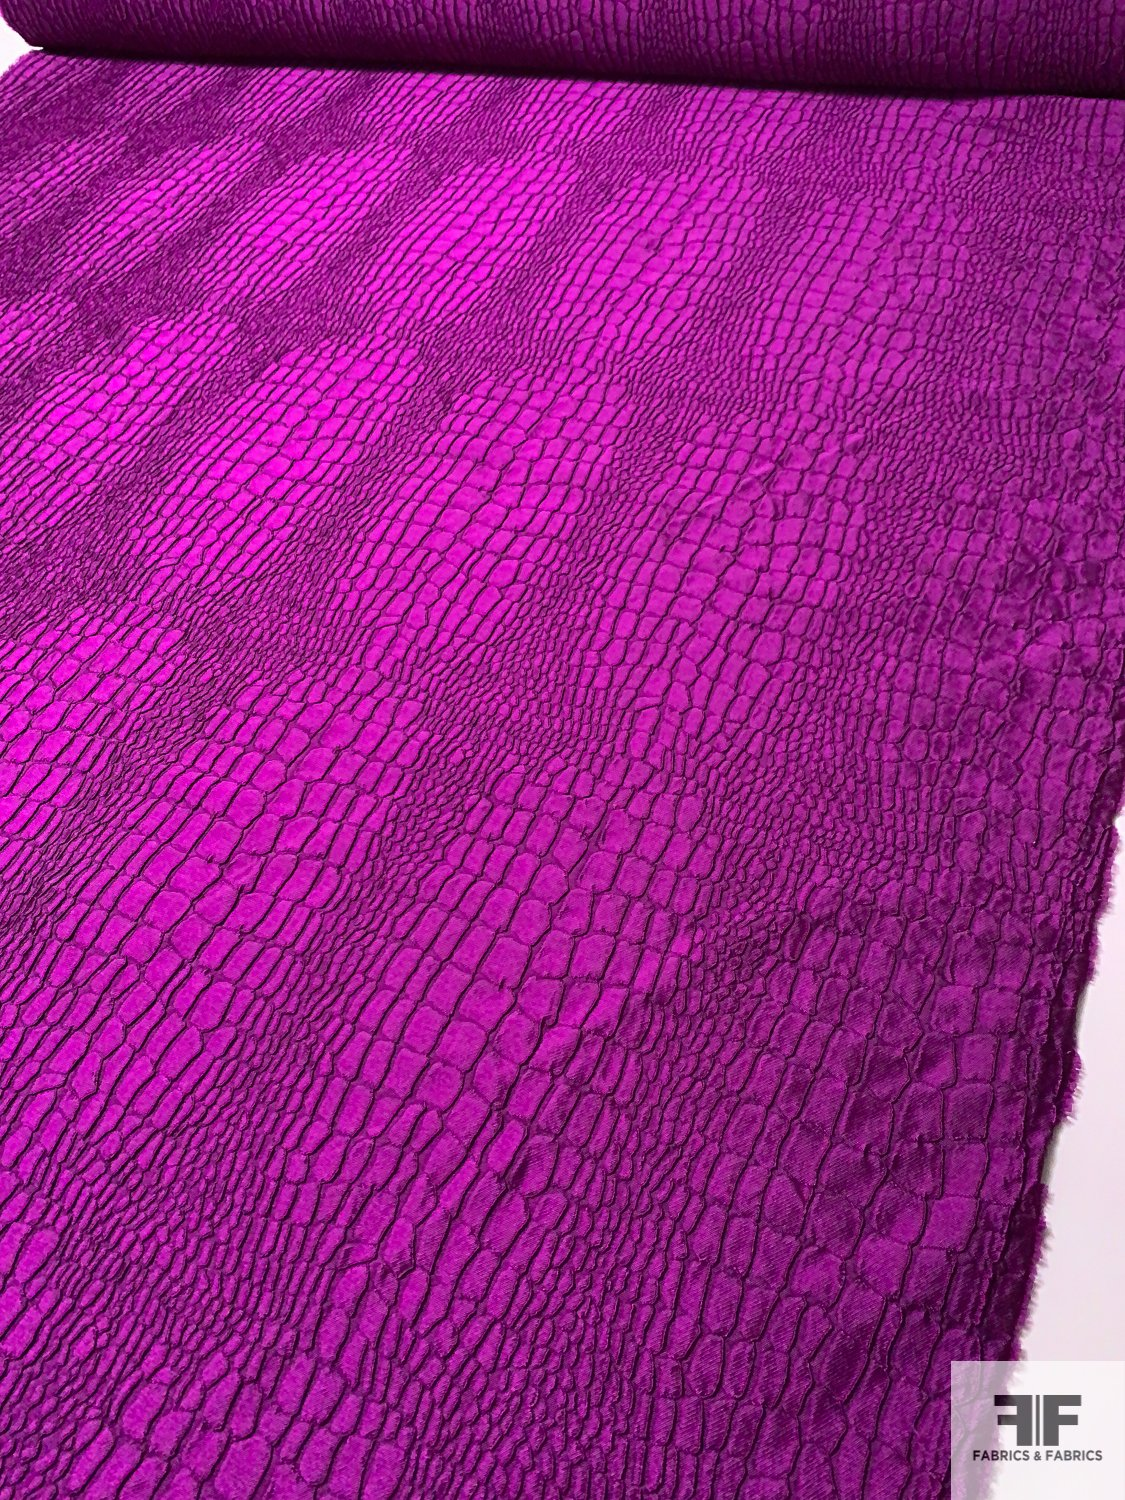 Made in Italy Alligator Pattern Brocade - Deep Magenta